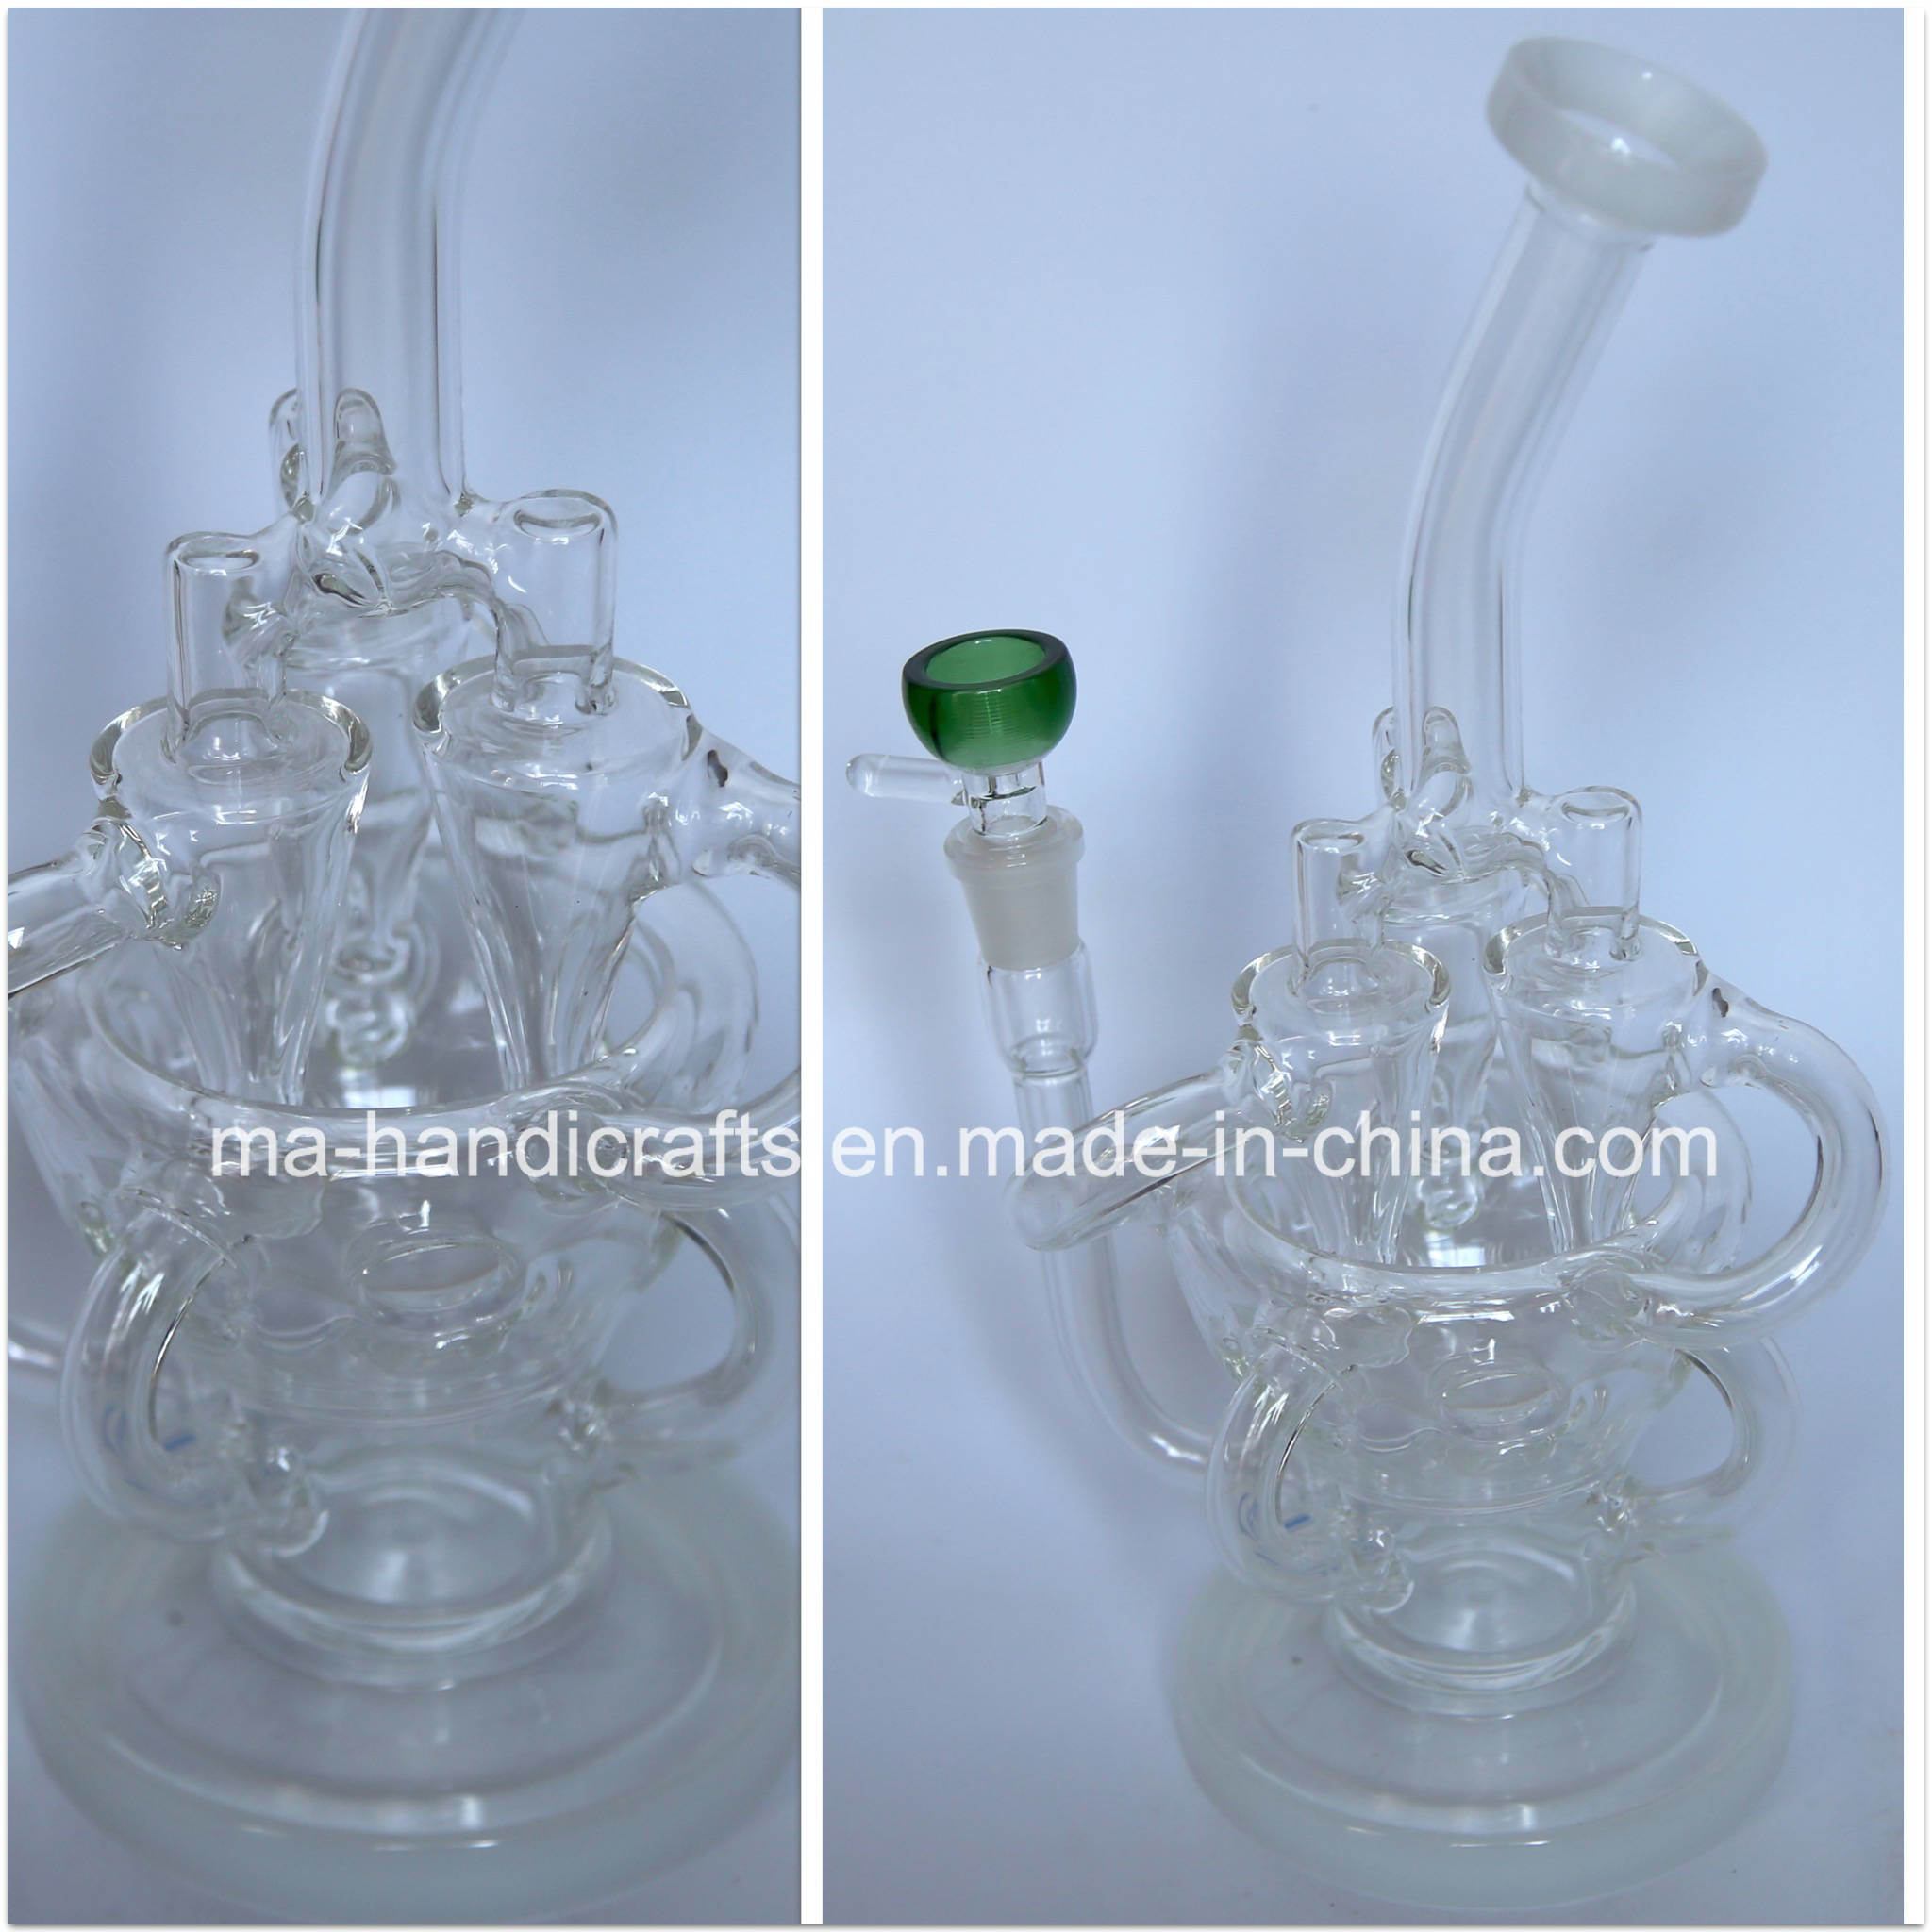 12 Inch Glass Recycler Bubbler Smoking Glass Water Pipes Oil DAB Rigs